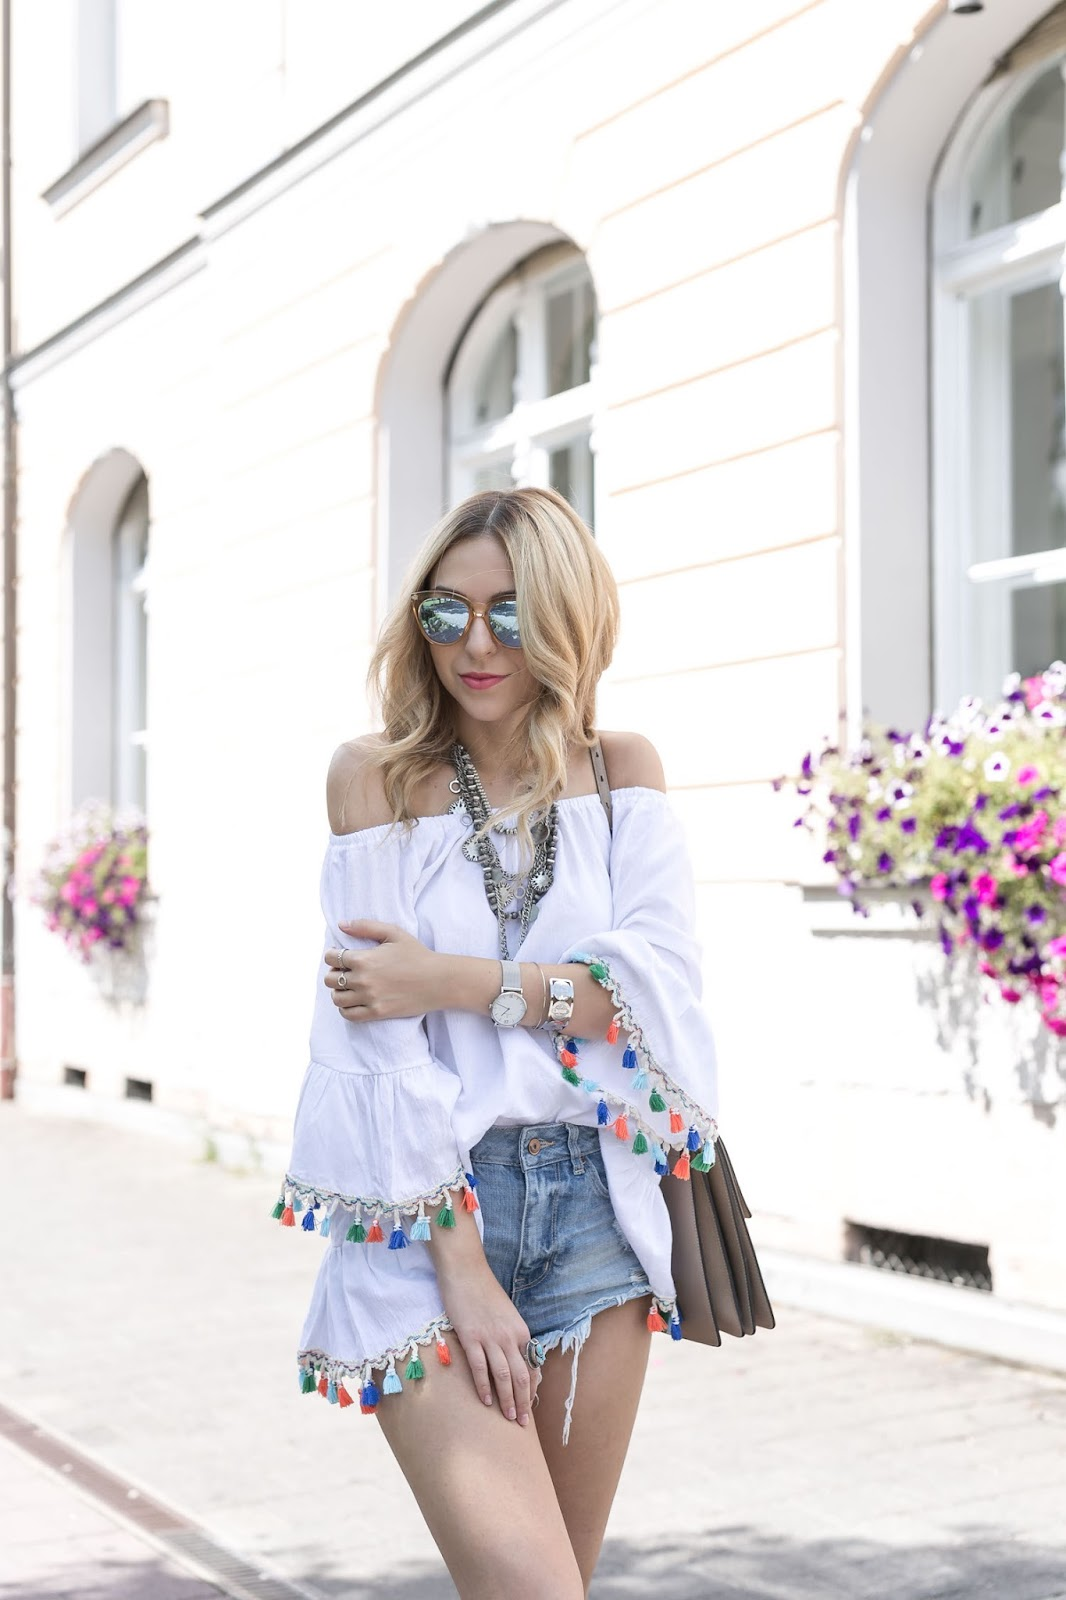 Want Get Repeat Blog Pompom Sandals Tassels Outfit